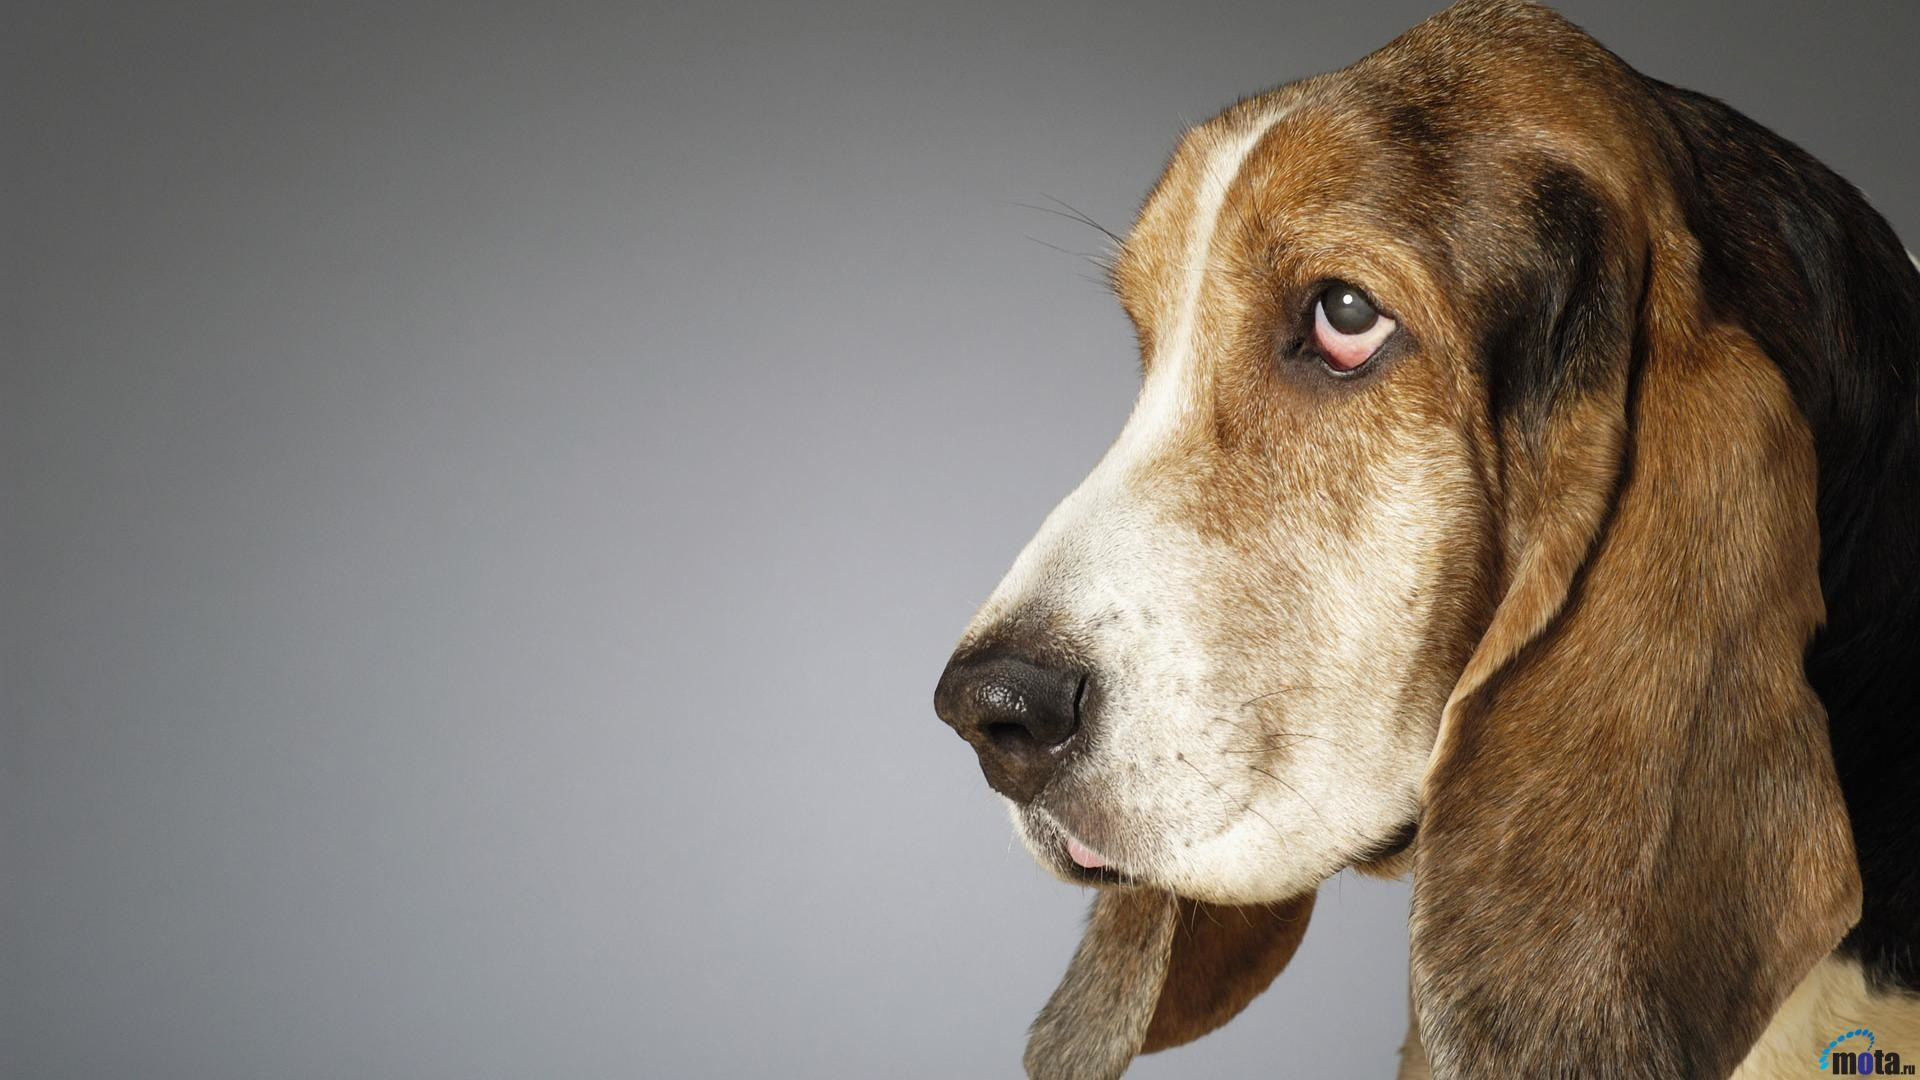 1920x1080 Download Wallpaper Side profile of a Basset Hound (1920 x .